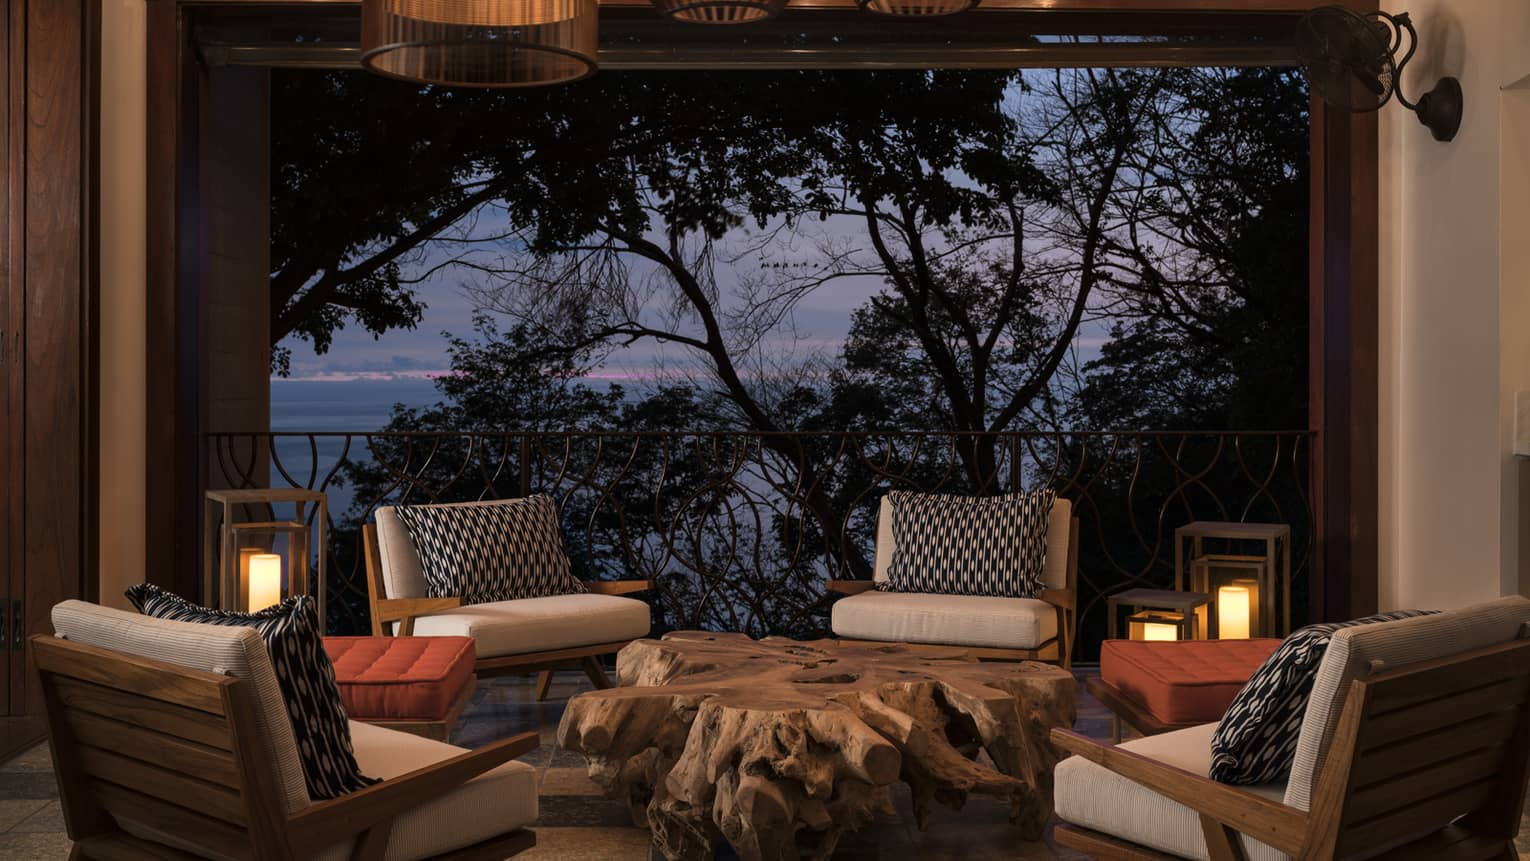 Sitting Area with Night Ocean View